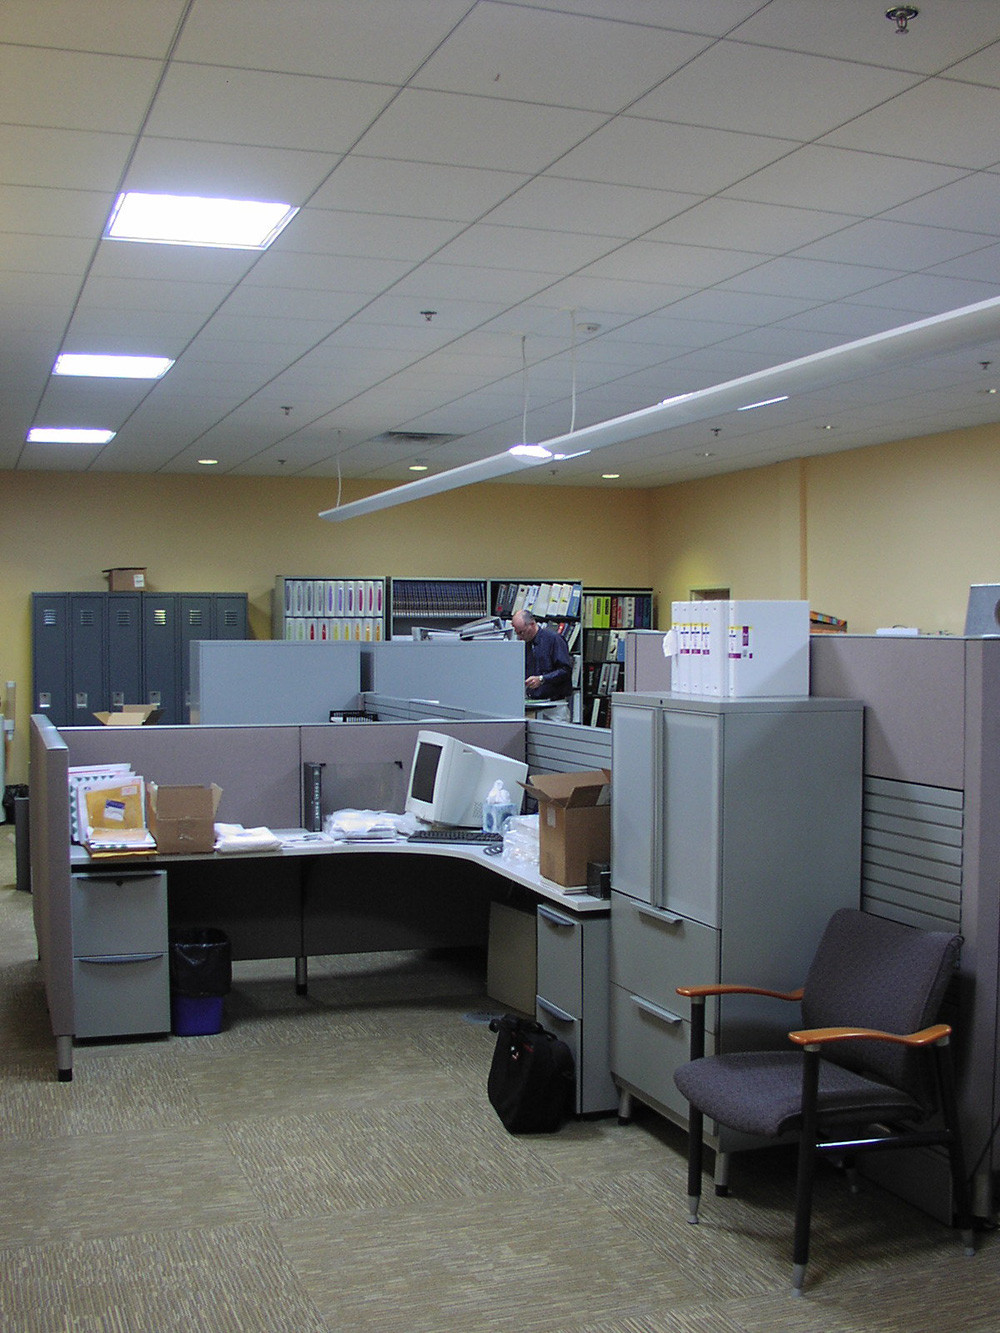 Light/Space/Design innovated light tubes with photosensor-dimmed lighting at Office Environments in South Burlington.